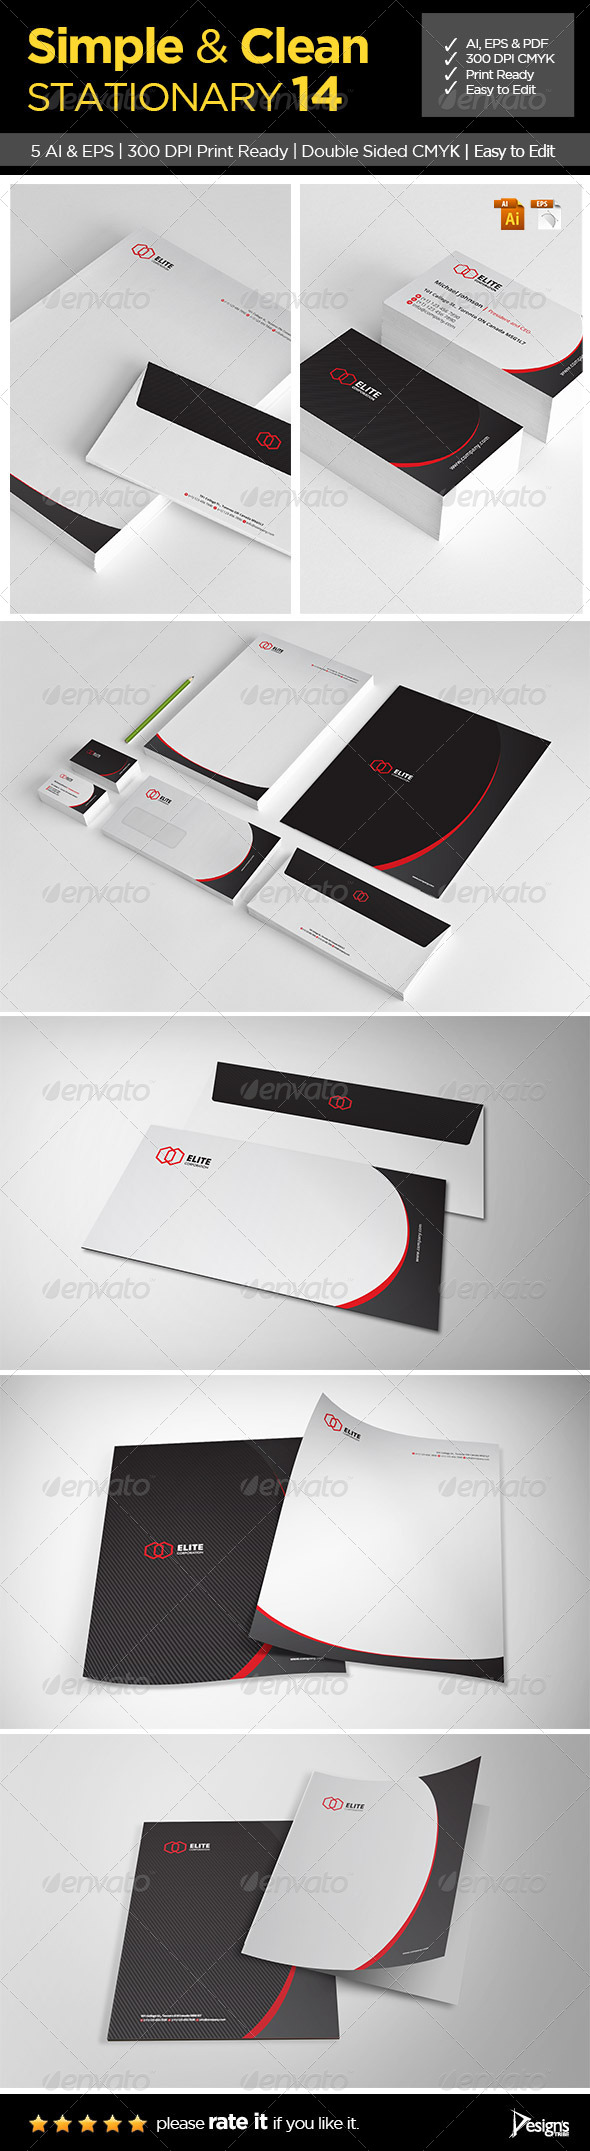 GraphicRiver Simple and Clean Stationary 14 6400601